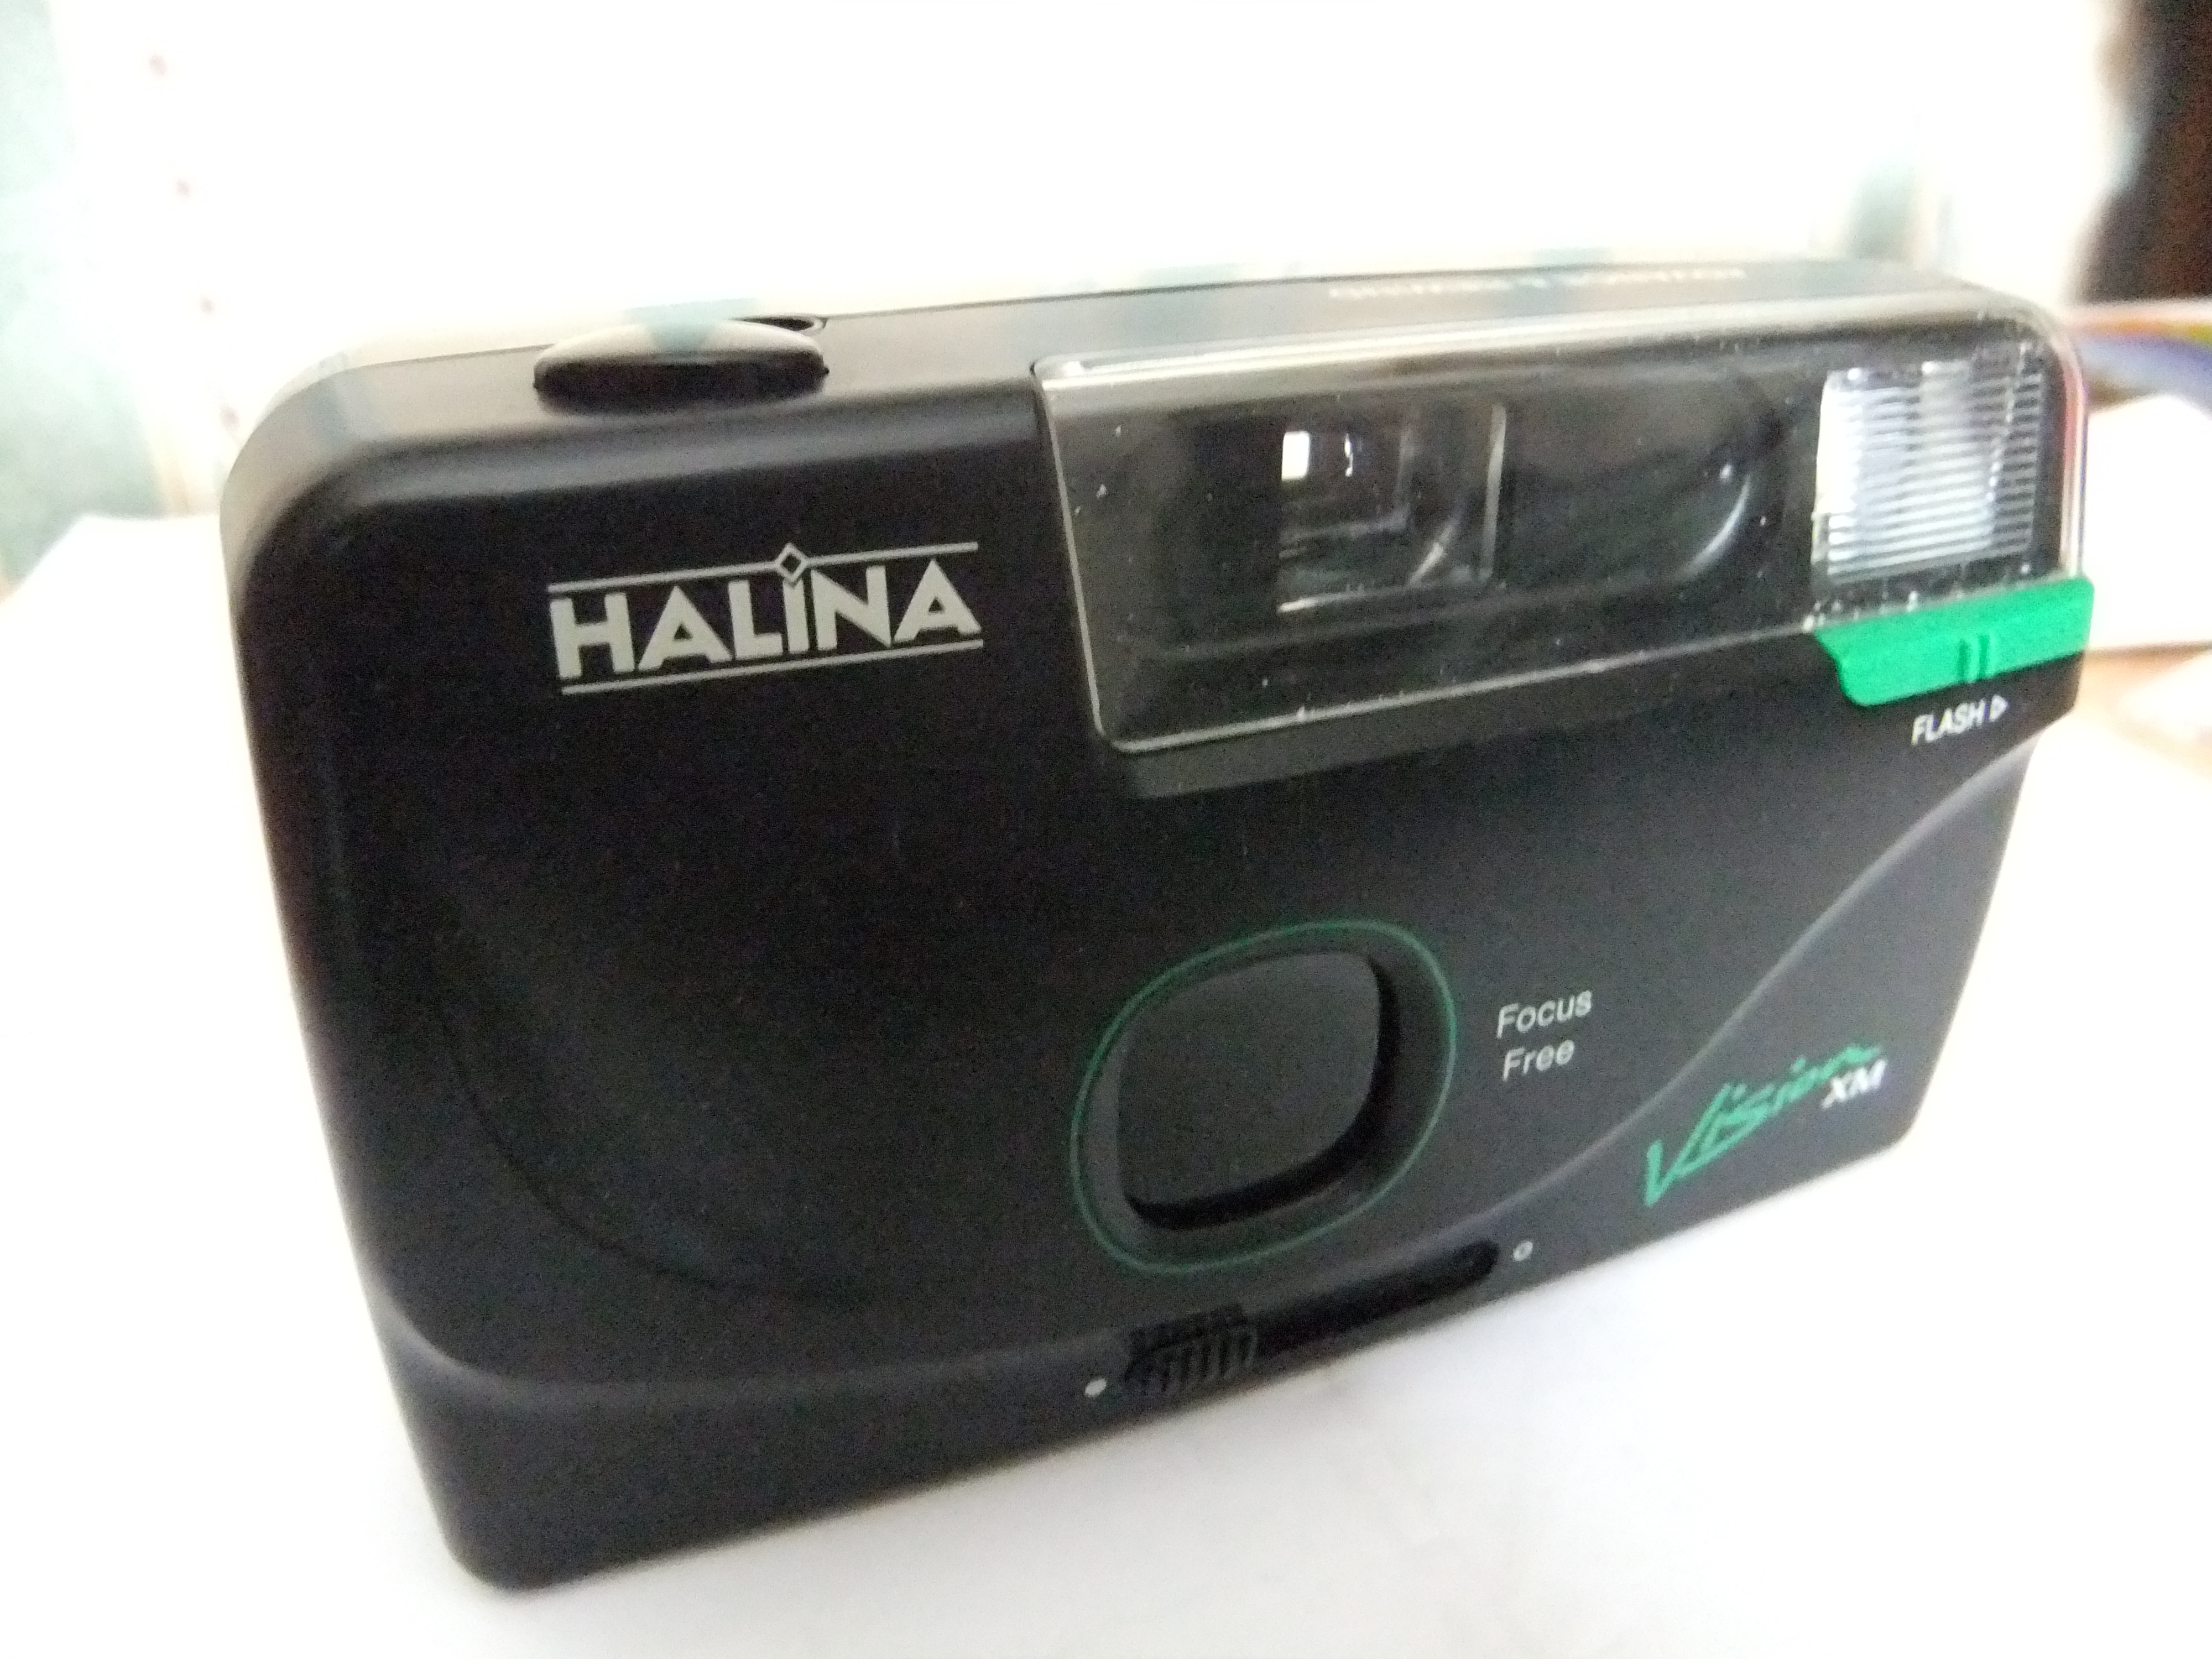 File:Halina Vision XM focus free 35mm film camera, front view, lens